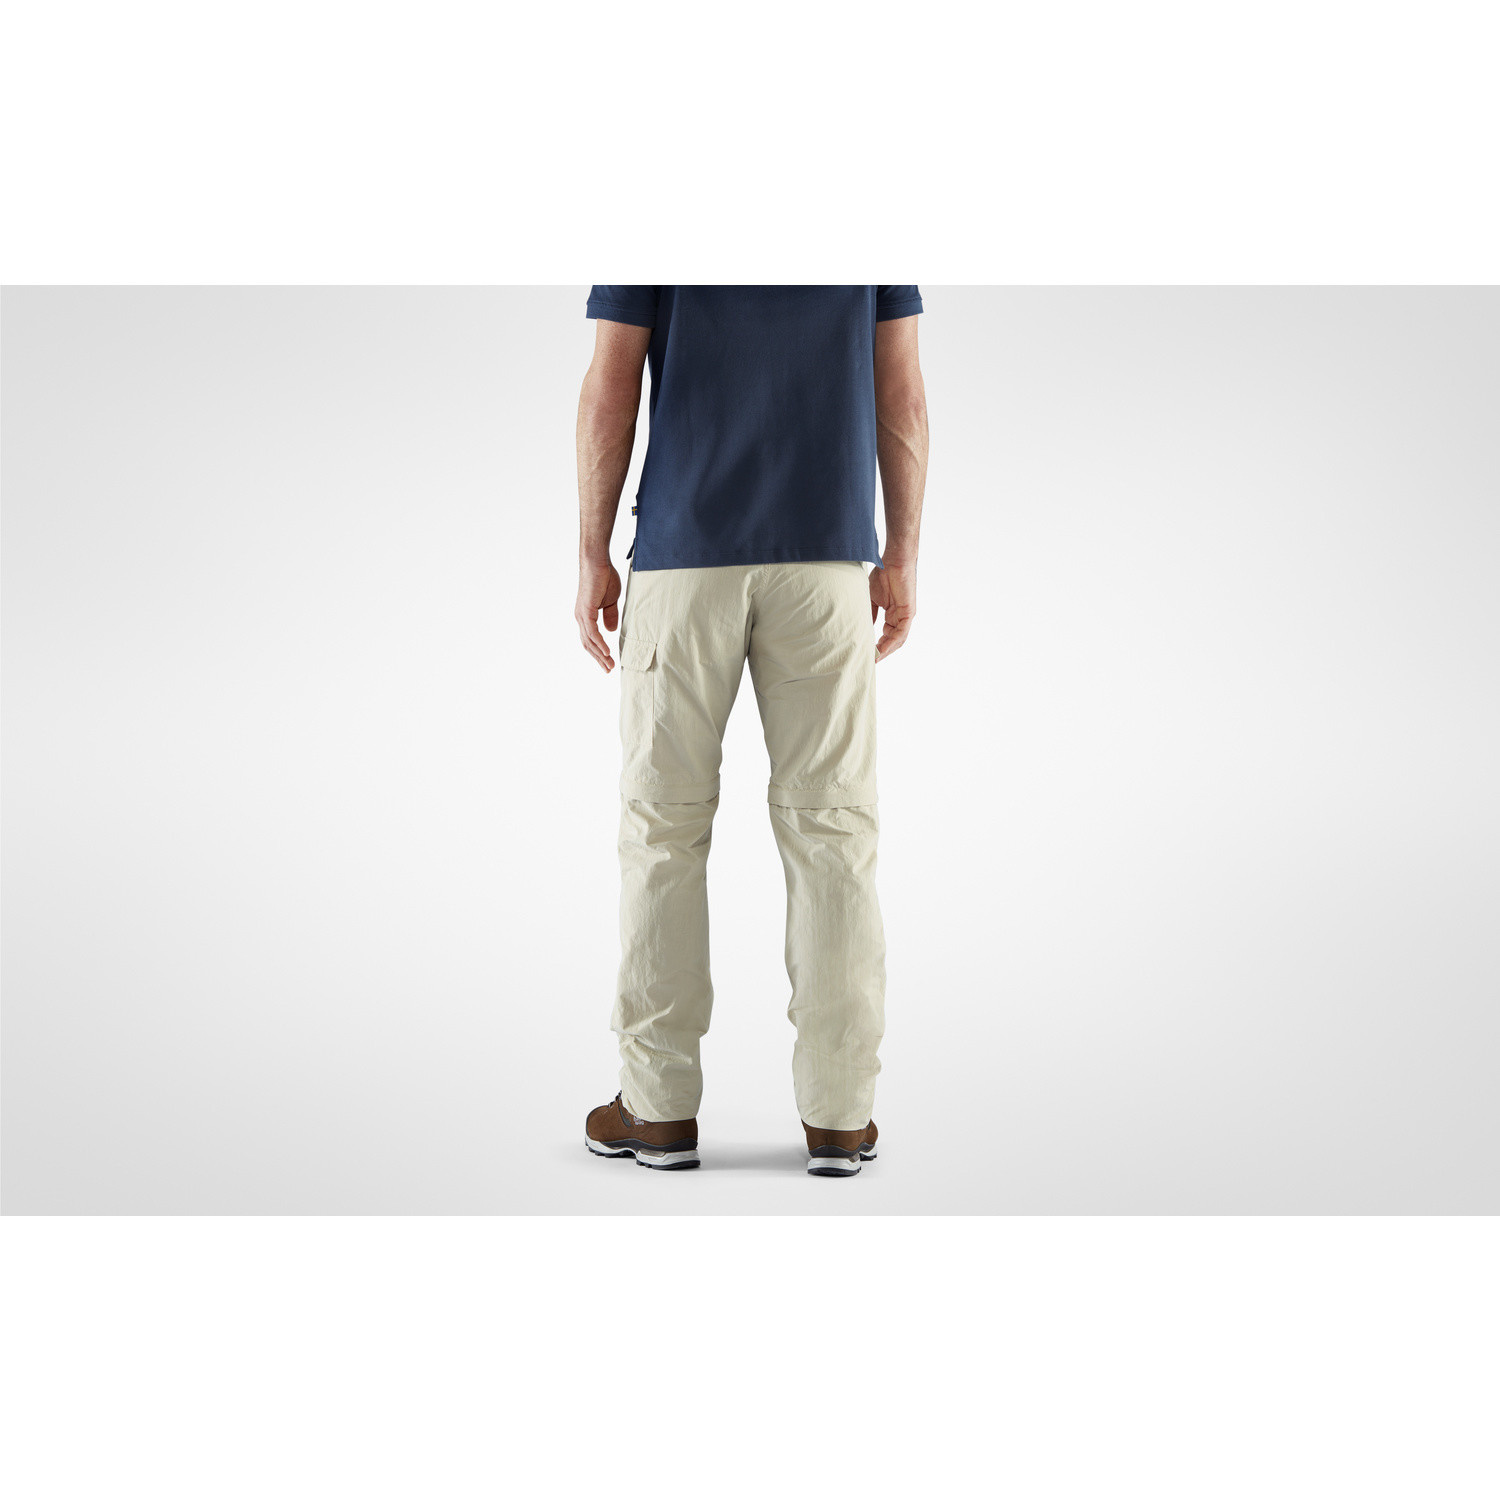 Fjällräven Travellers MT Zip-off Trousers M Light Beige-4